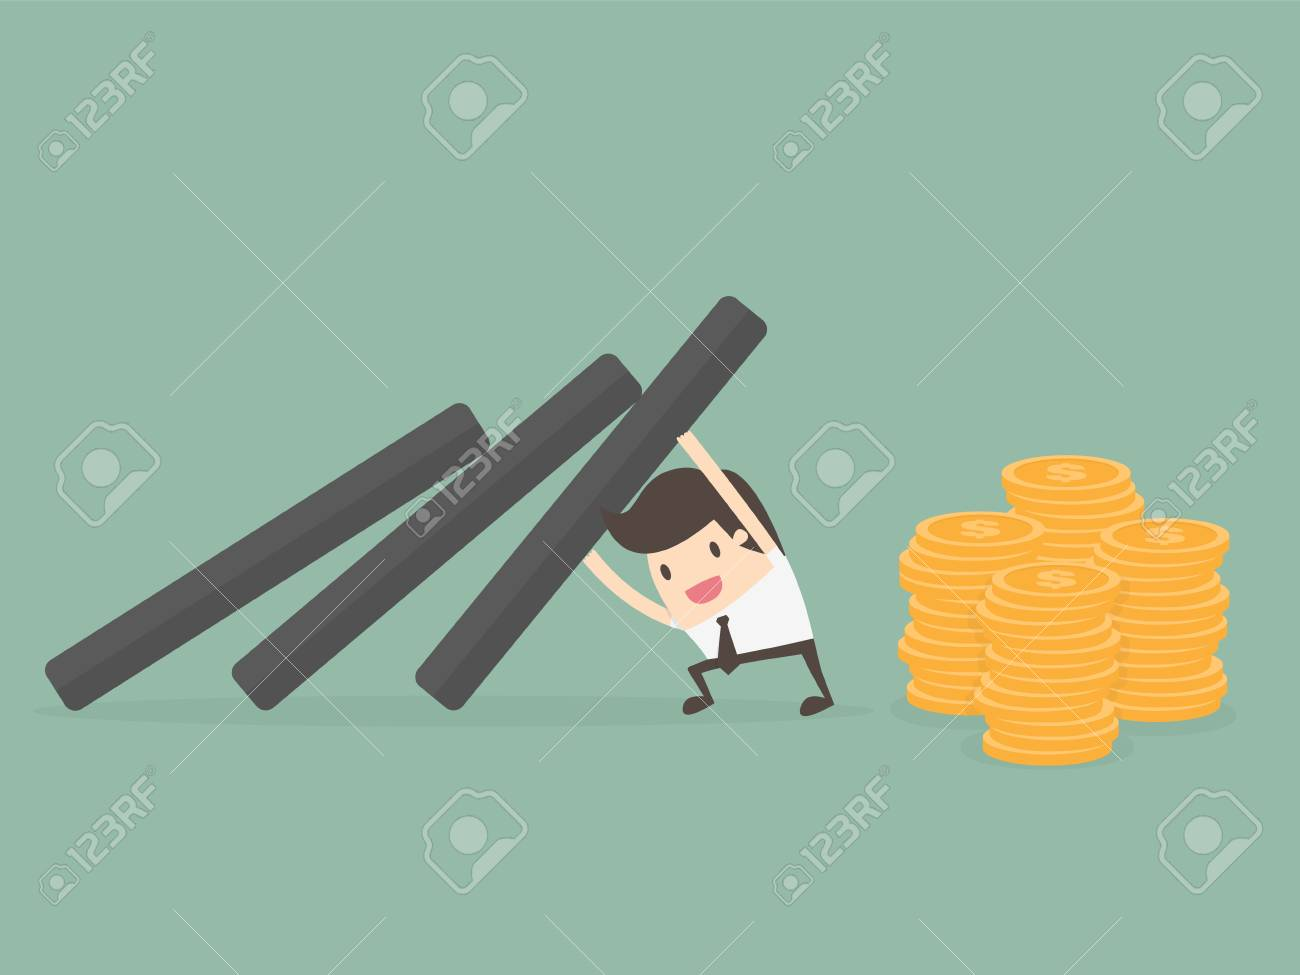 Money Protection. Business Concept Illustration. - 83432913